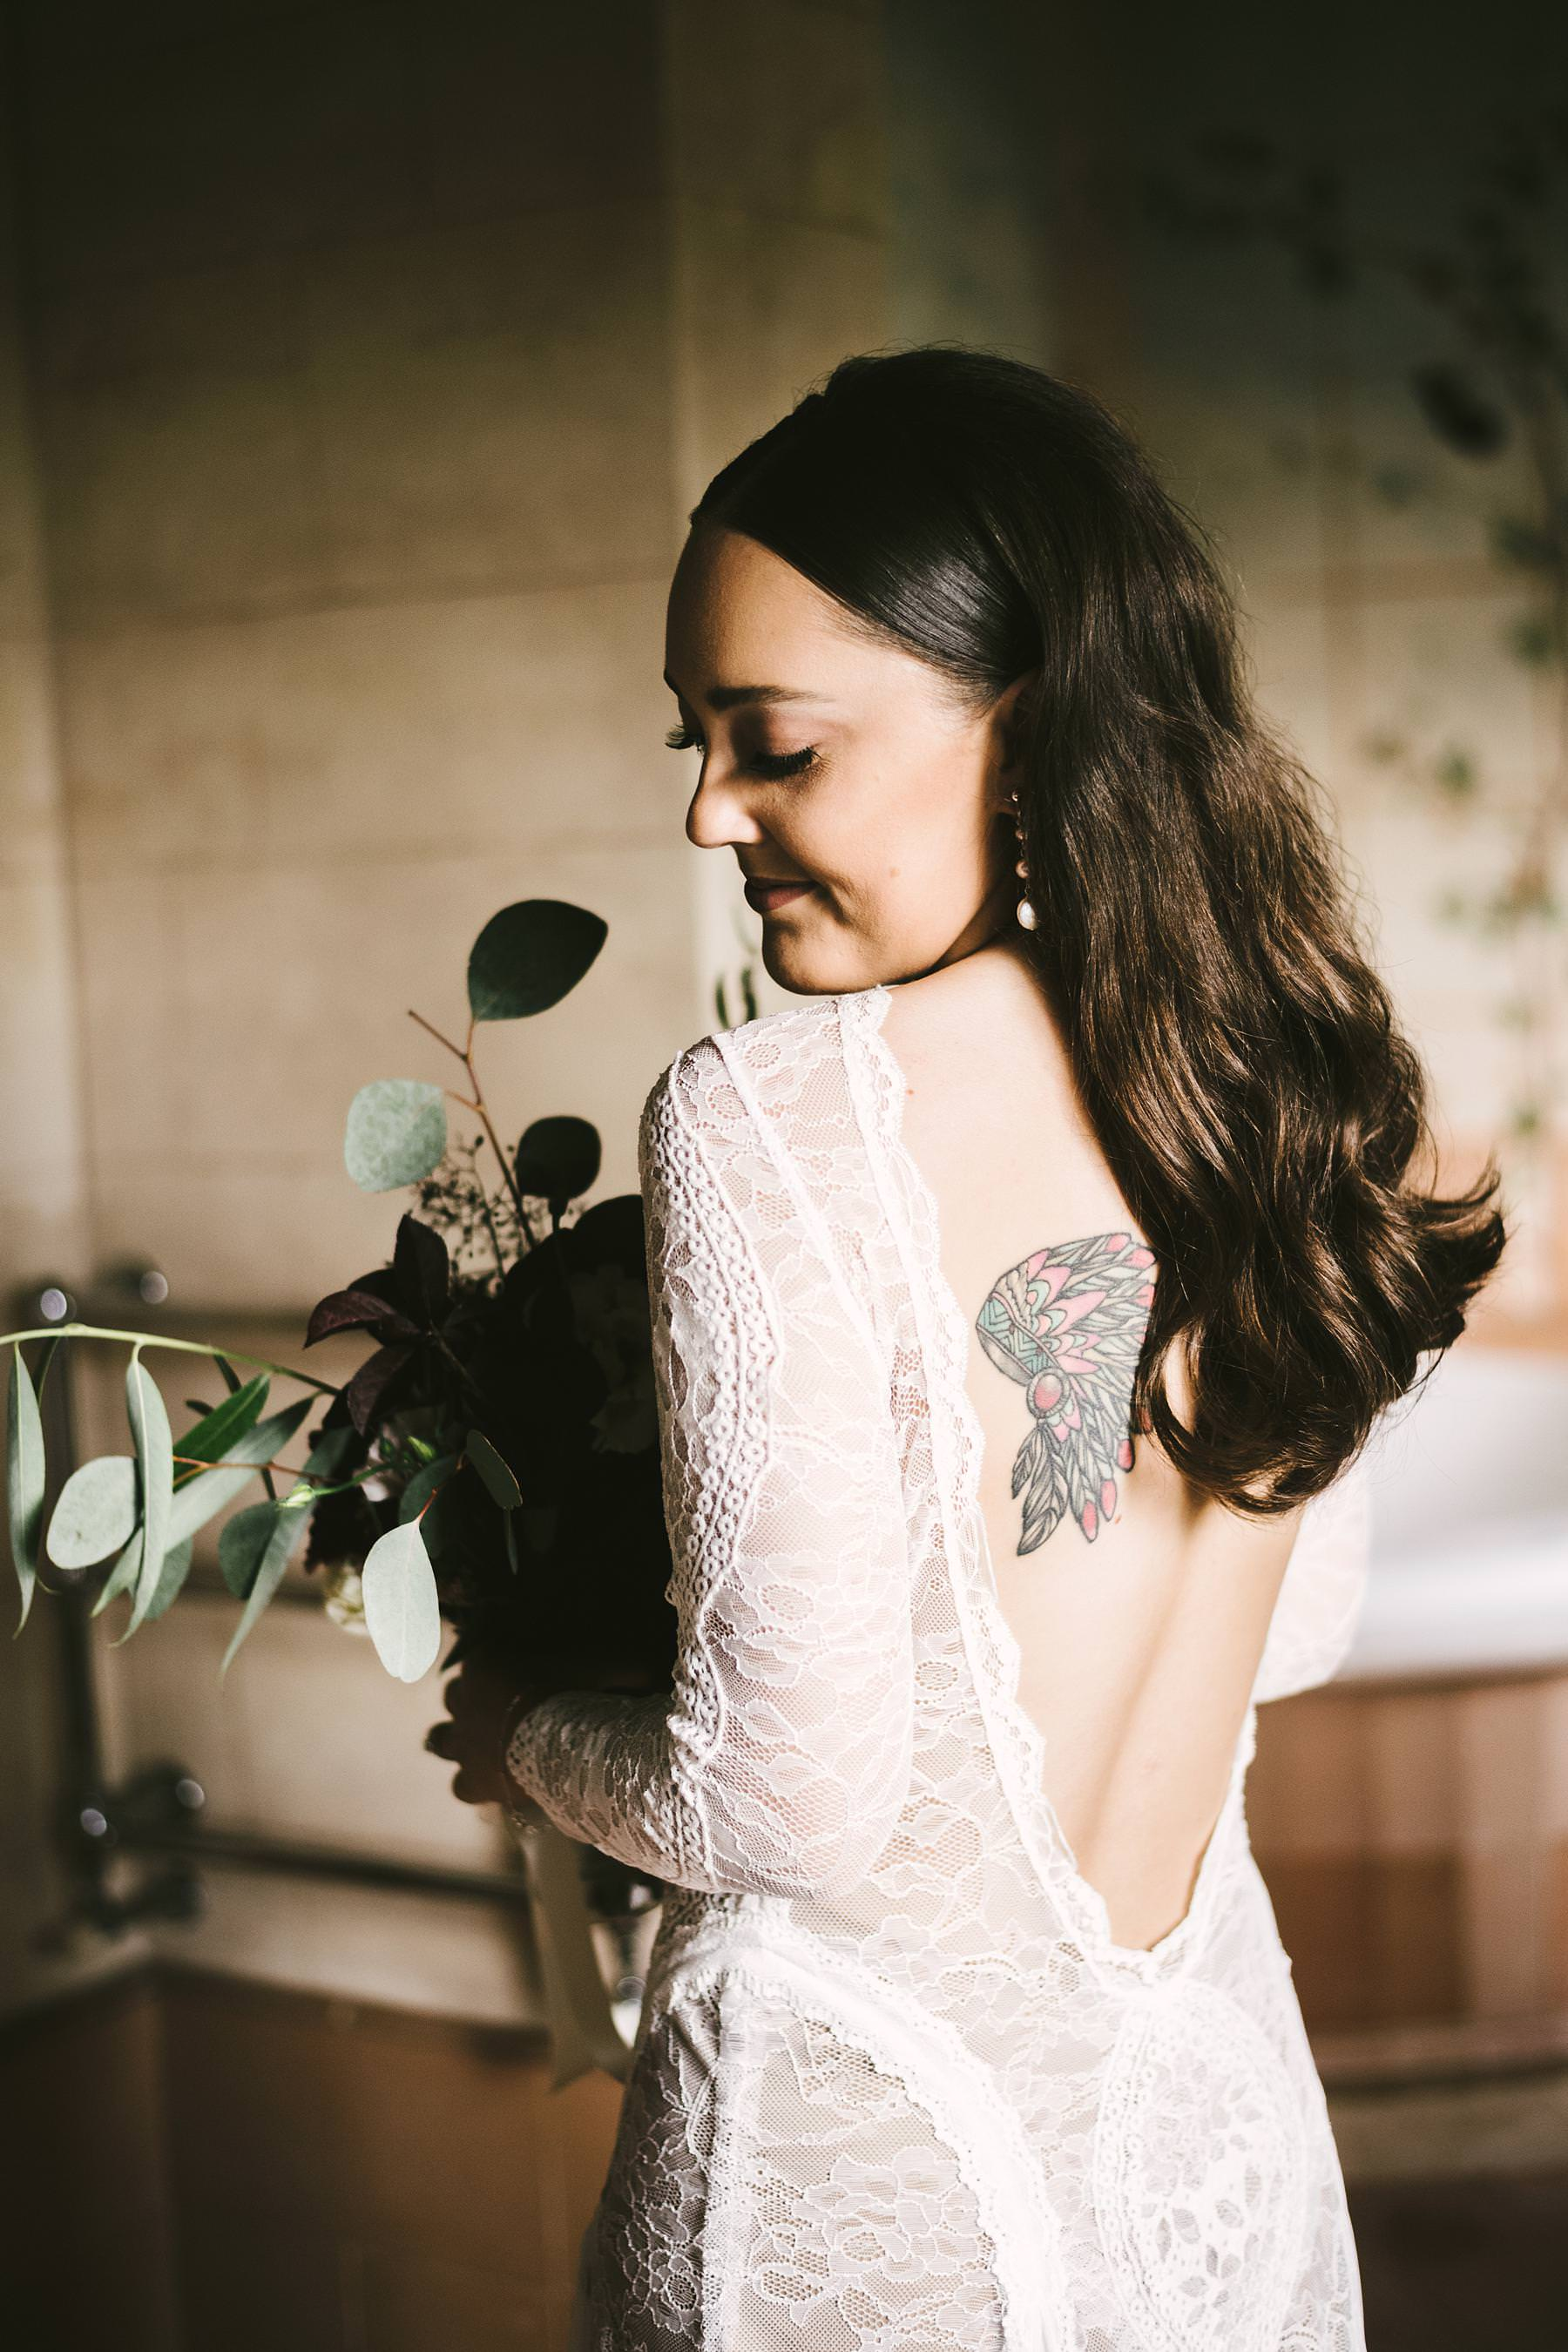 Elegant bride Holly in gorgeous Grace Loves Lace wedding gown at Villa l'Antica Posta, Umbria. Charming and unforgettable intimate destination wedding in Umbria